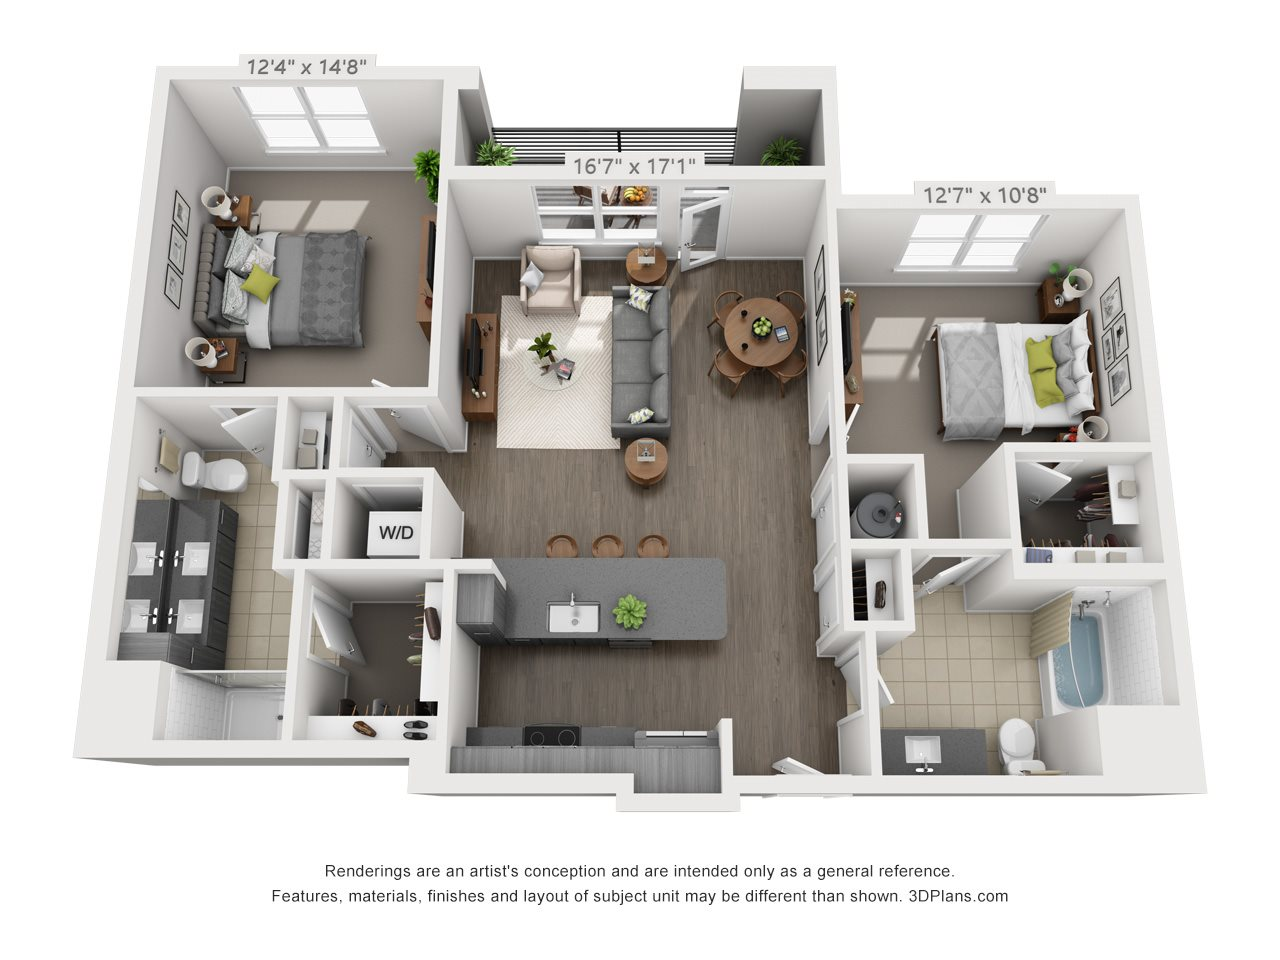 B2 2 BEDROOM/2 BATH Floor Plan 15